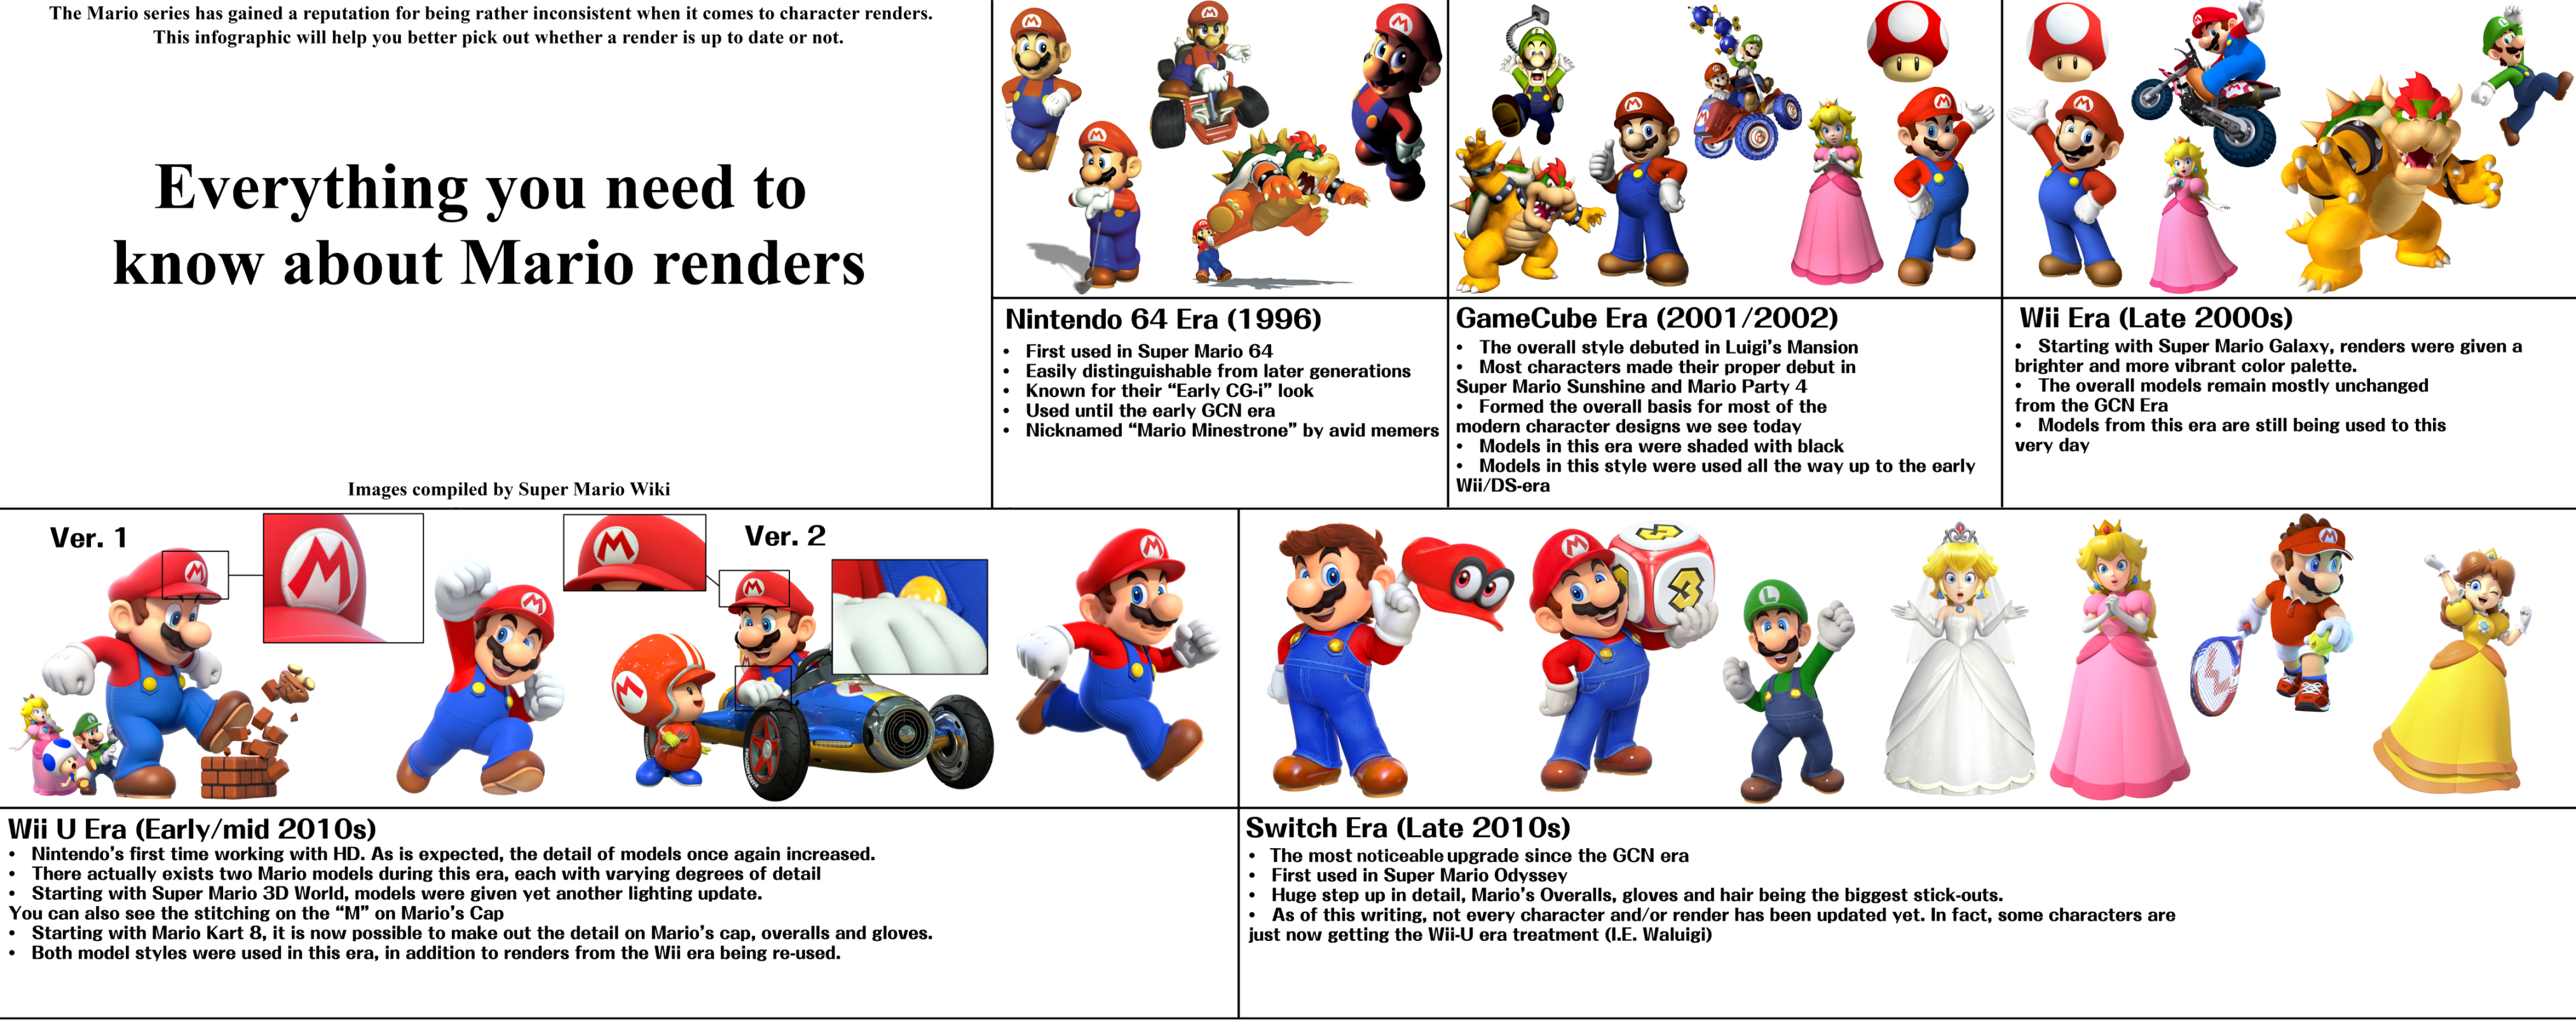 Everything You Need to Know About Mario Renders | Super